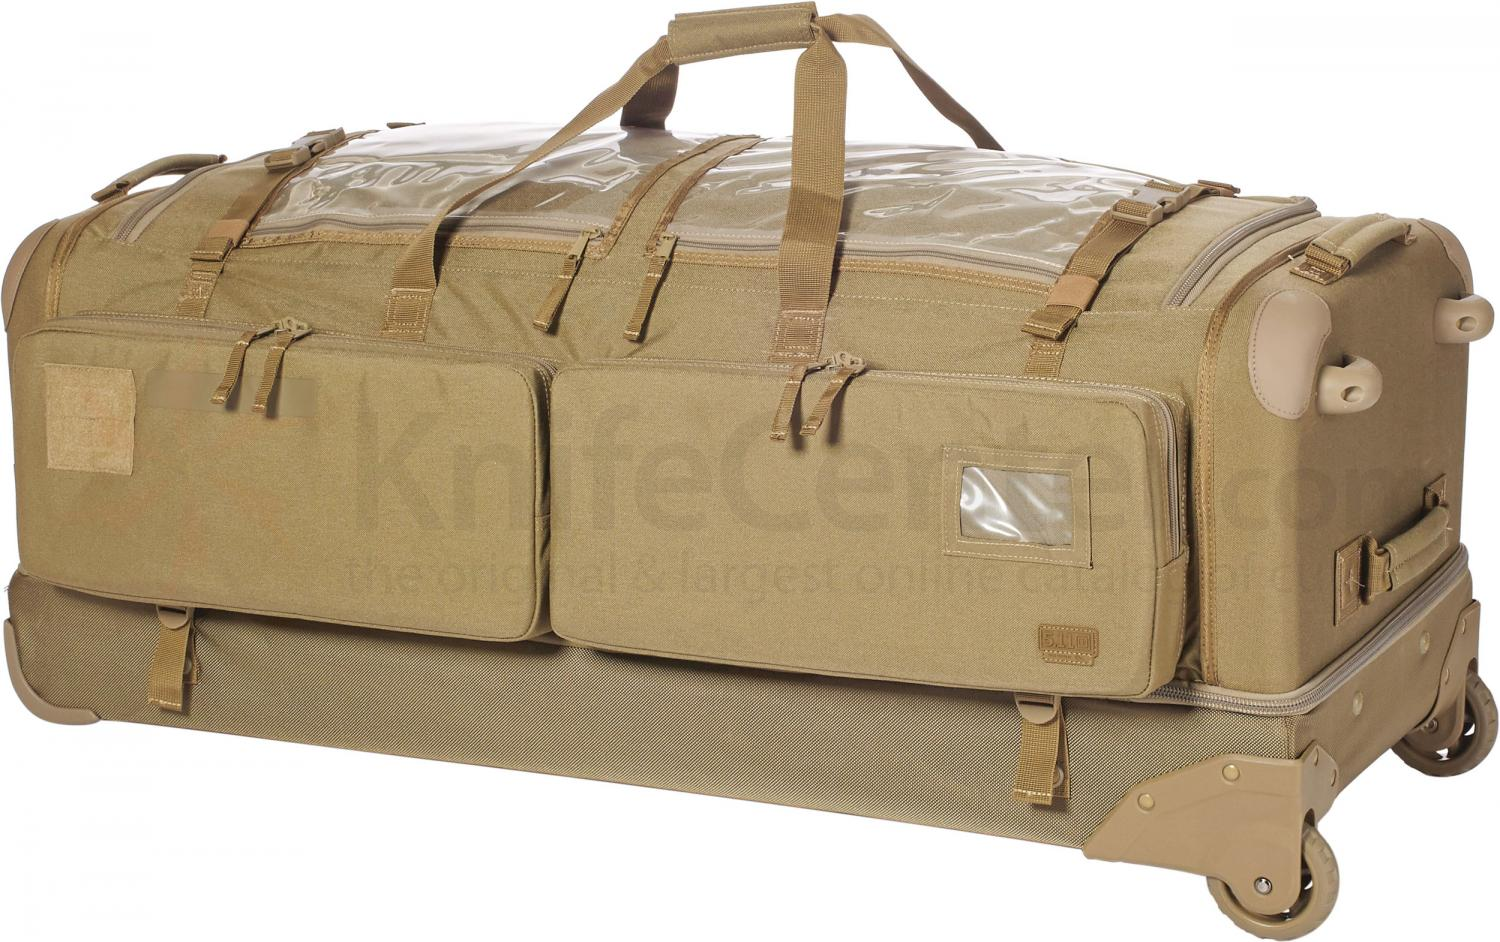 Large Military Duffle Bag With Wheels- Fenix Toulouse Handball 9e52118d76417